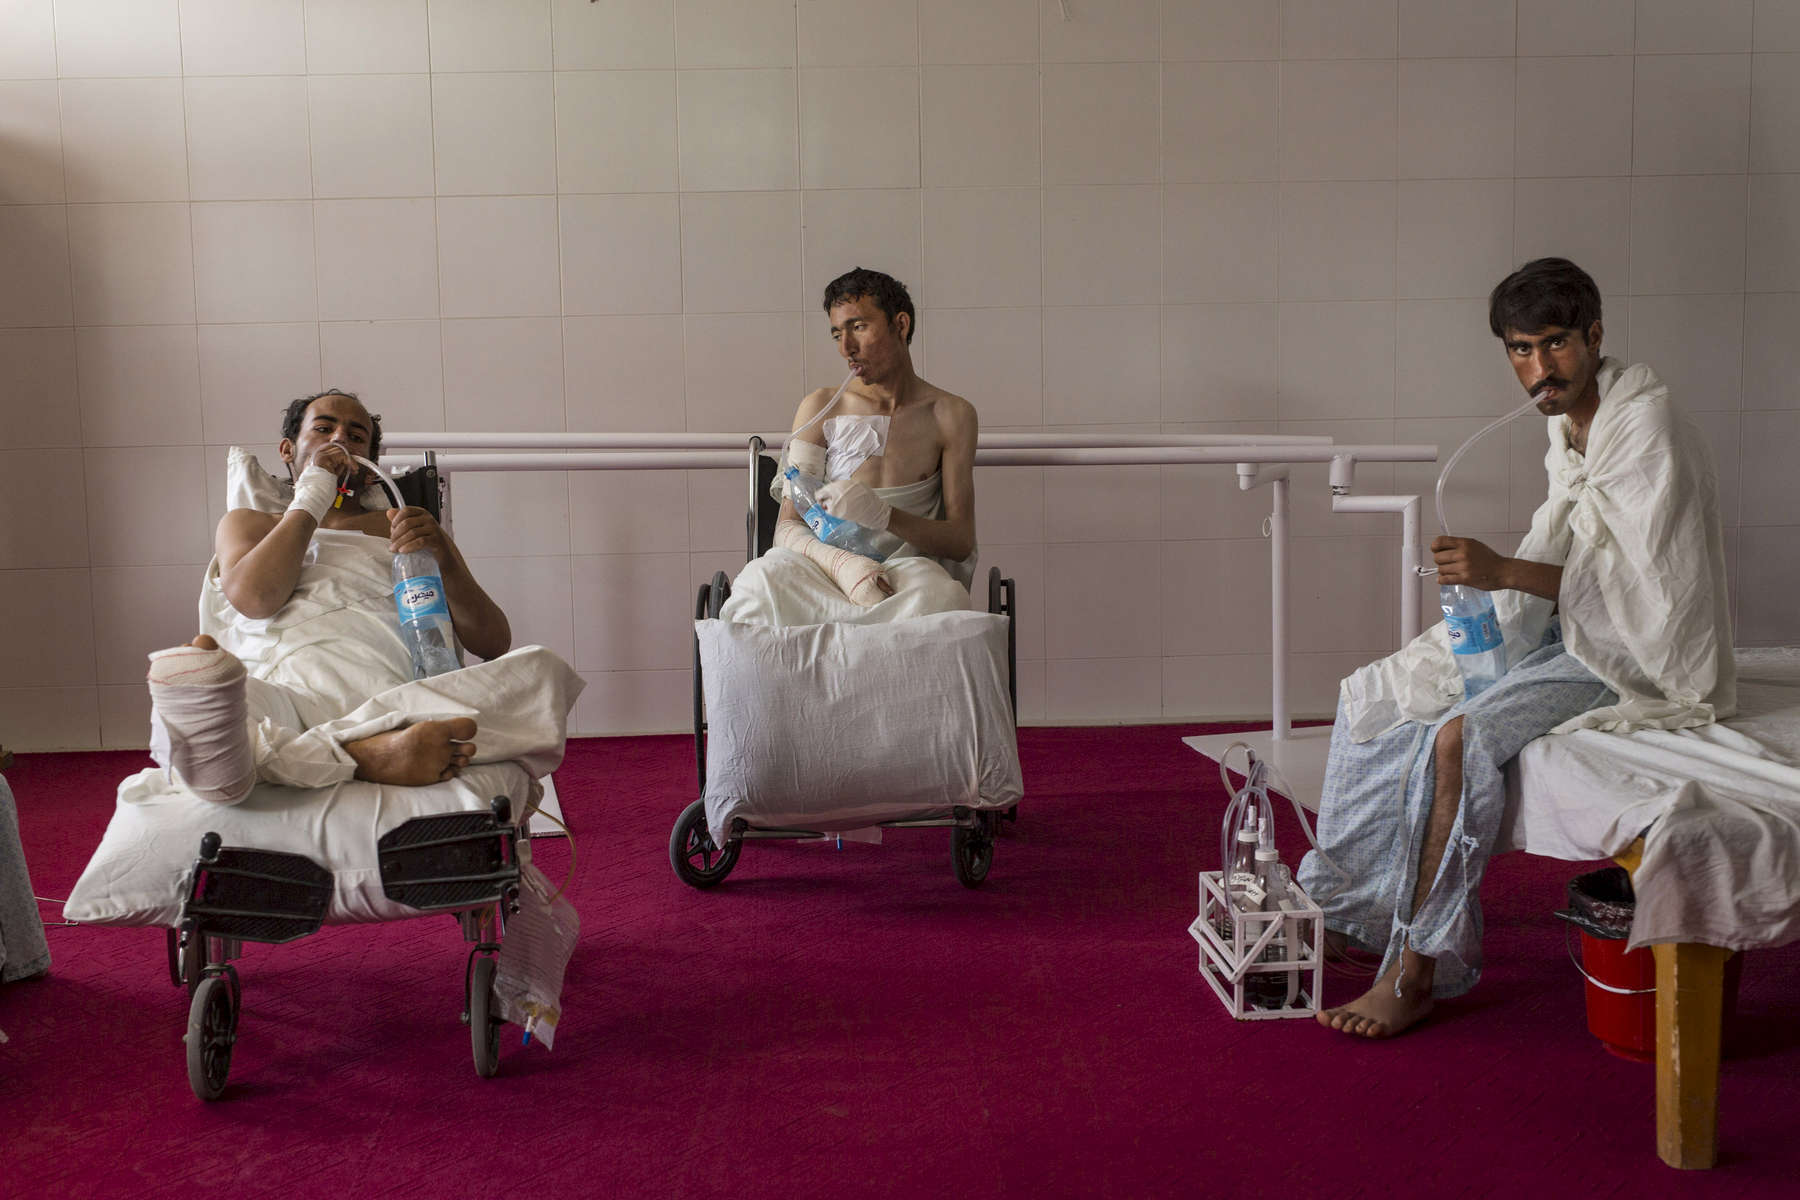 LASHKAR GAH, AFGHANISTAN -MARCH 27, 2015: Patients that have chest injuries strengthen their lung capacity with water bottles in the physical therapy room at the Emergency hospital.  Afghan civilians are at greater risk today than at any time since Taliban rule. According to UN statistics, in the first half of 2016 at least 1,600 people had died, and more than 3,500 people were injured, a 4 per cent increase in overall civilian causalities compared to the same period last year. The upsurge in violence has had devastating consequences for civilians, with suicide bombings and targeted attacks by the Taliban and other insurgents causing 70 percent of all civilian casualties.